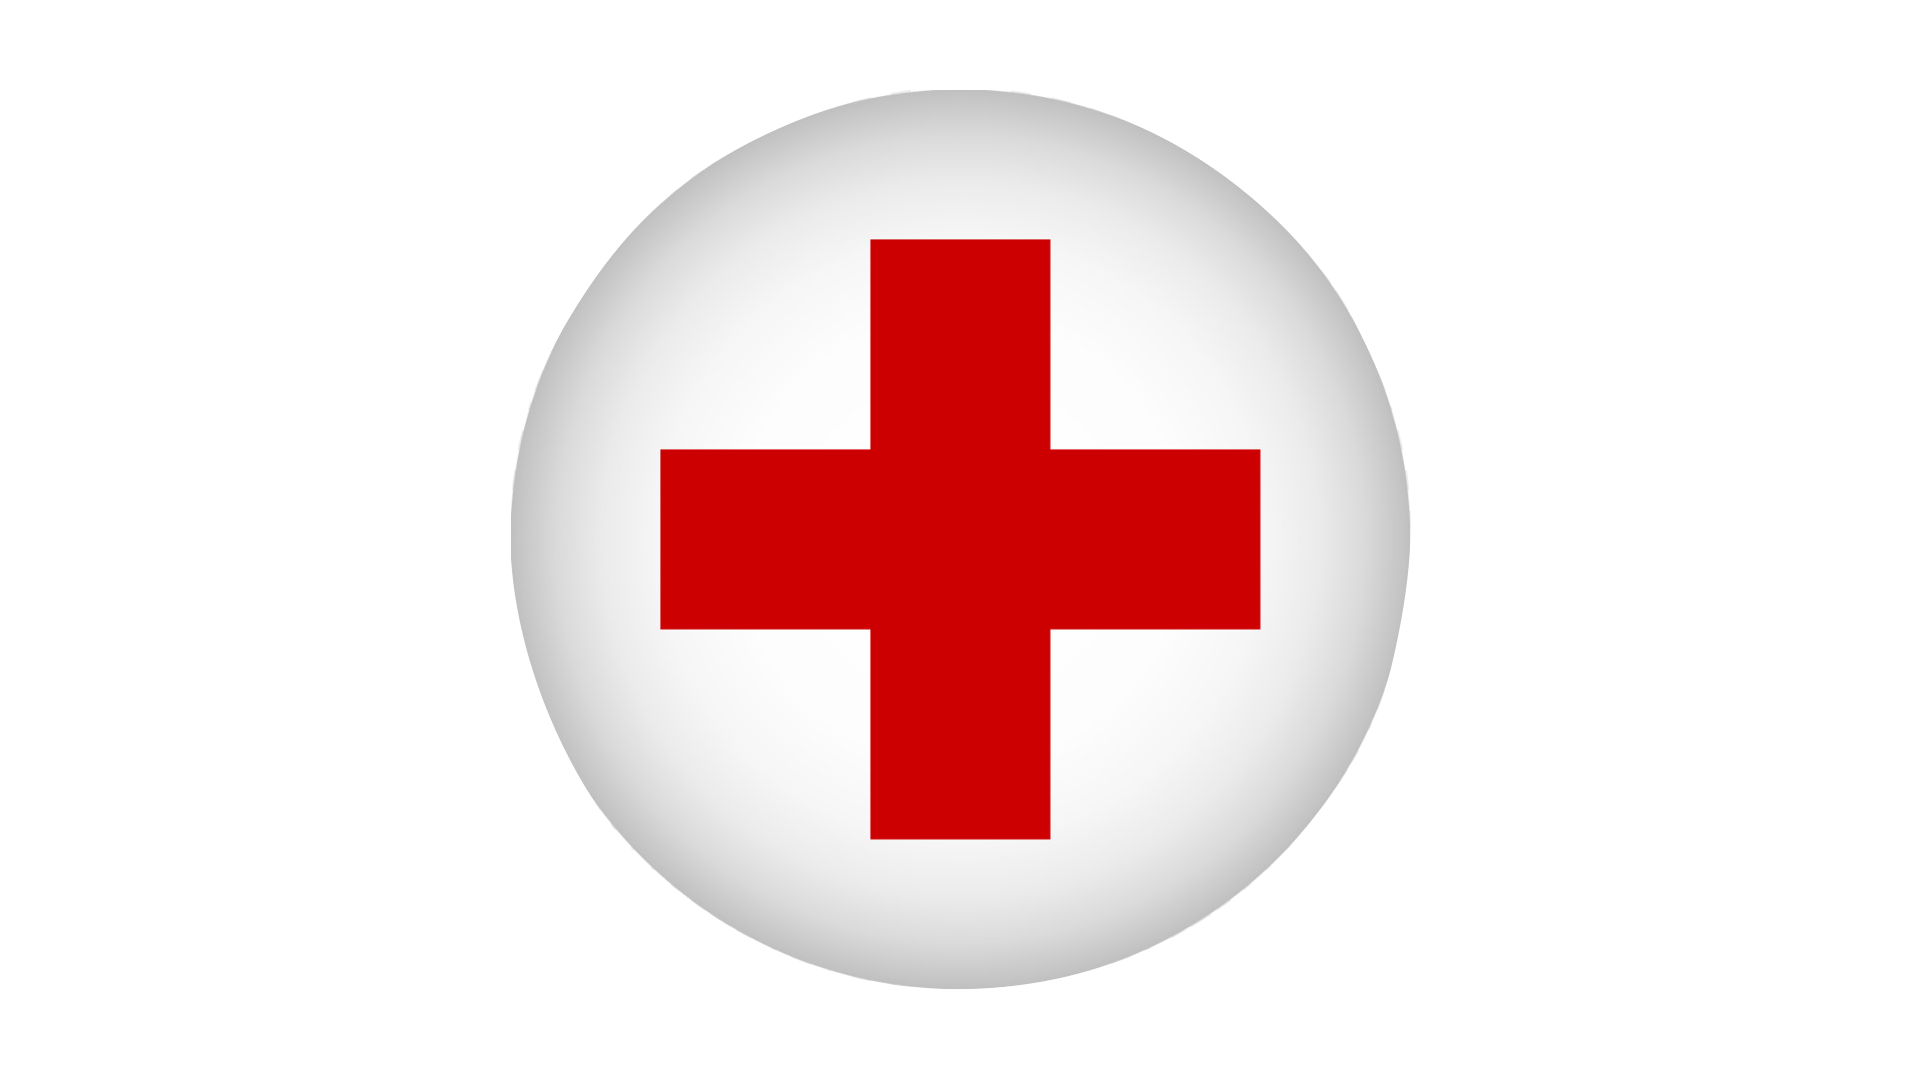 American Red crosslogo.png